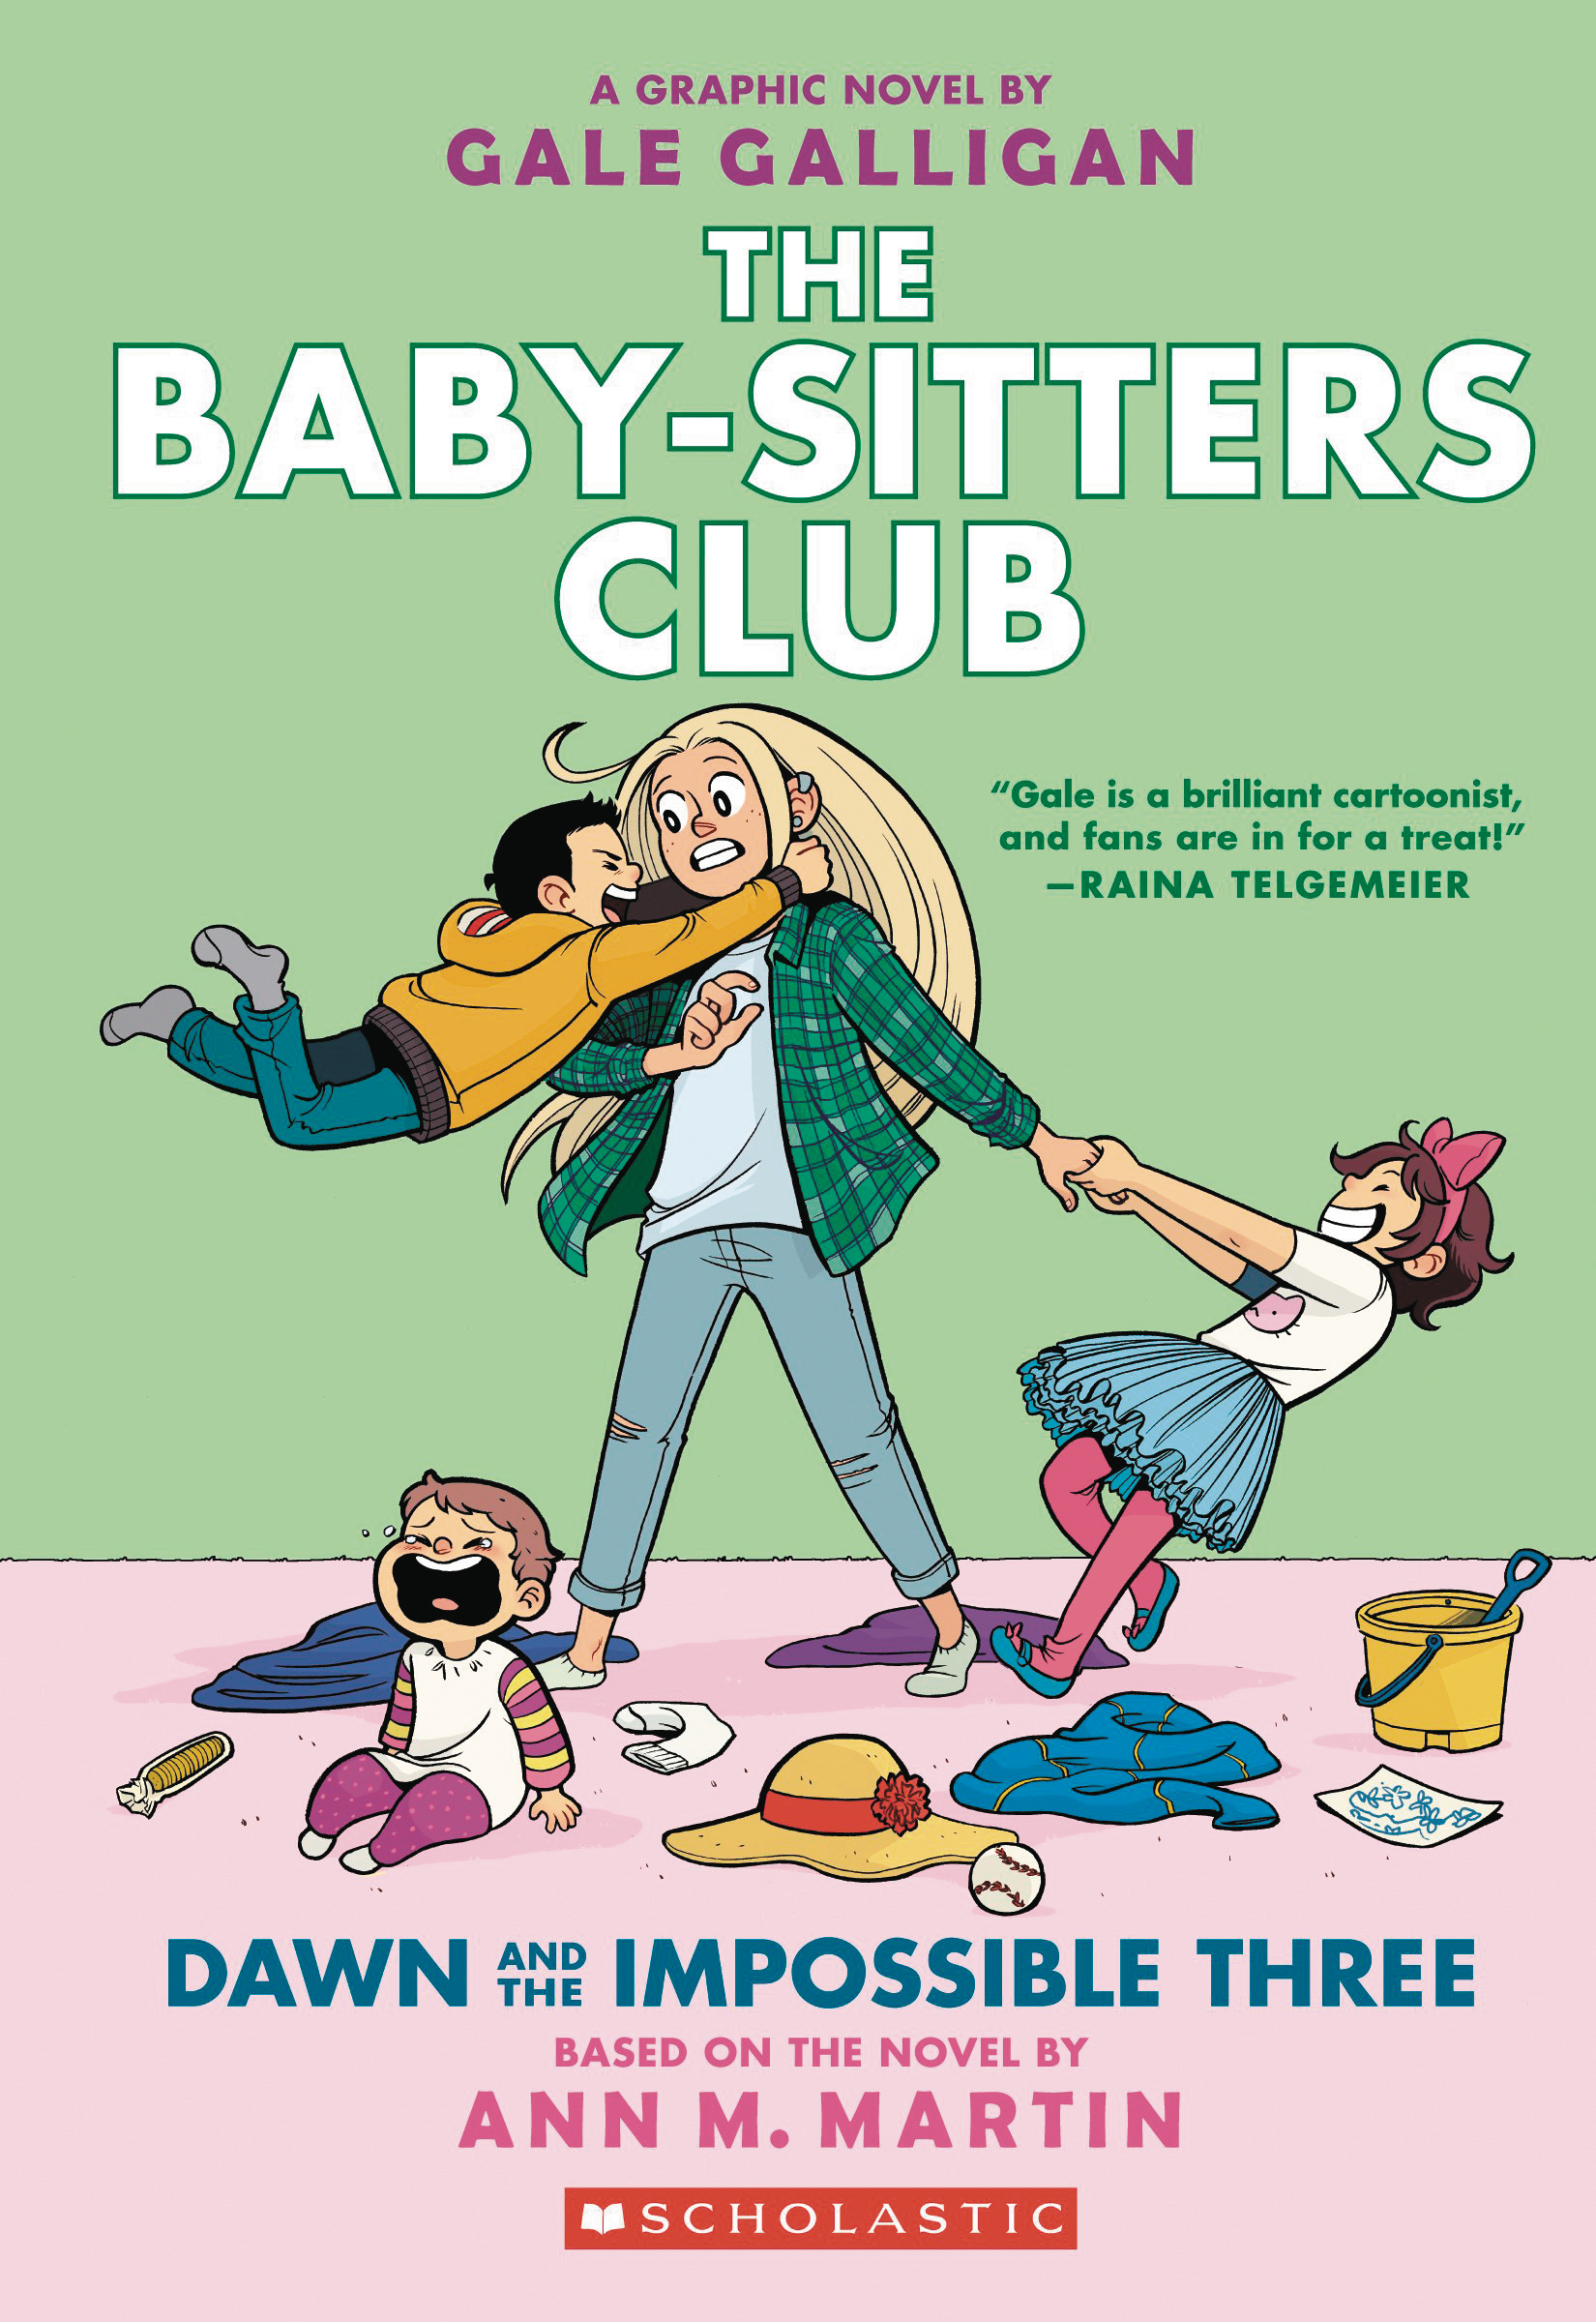 BABY SITTERS CLUB COLOR ED HC GN VOL 05 DAWN IMPOSSIBLE 3